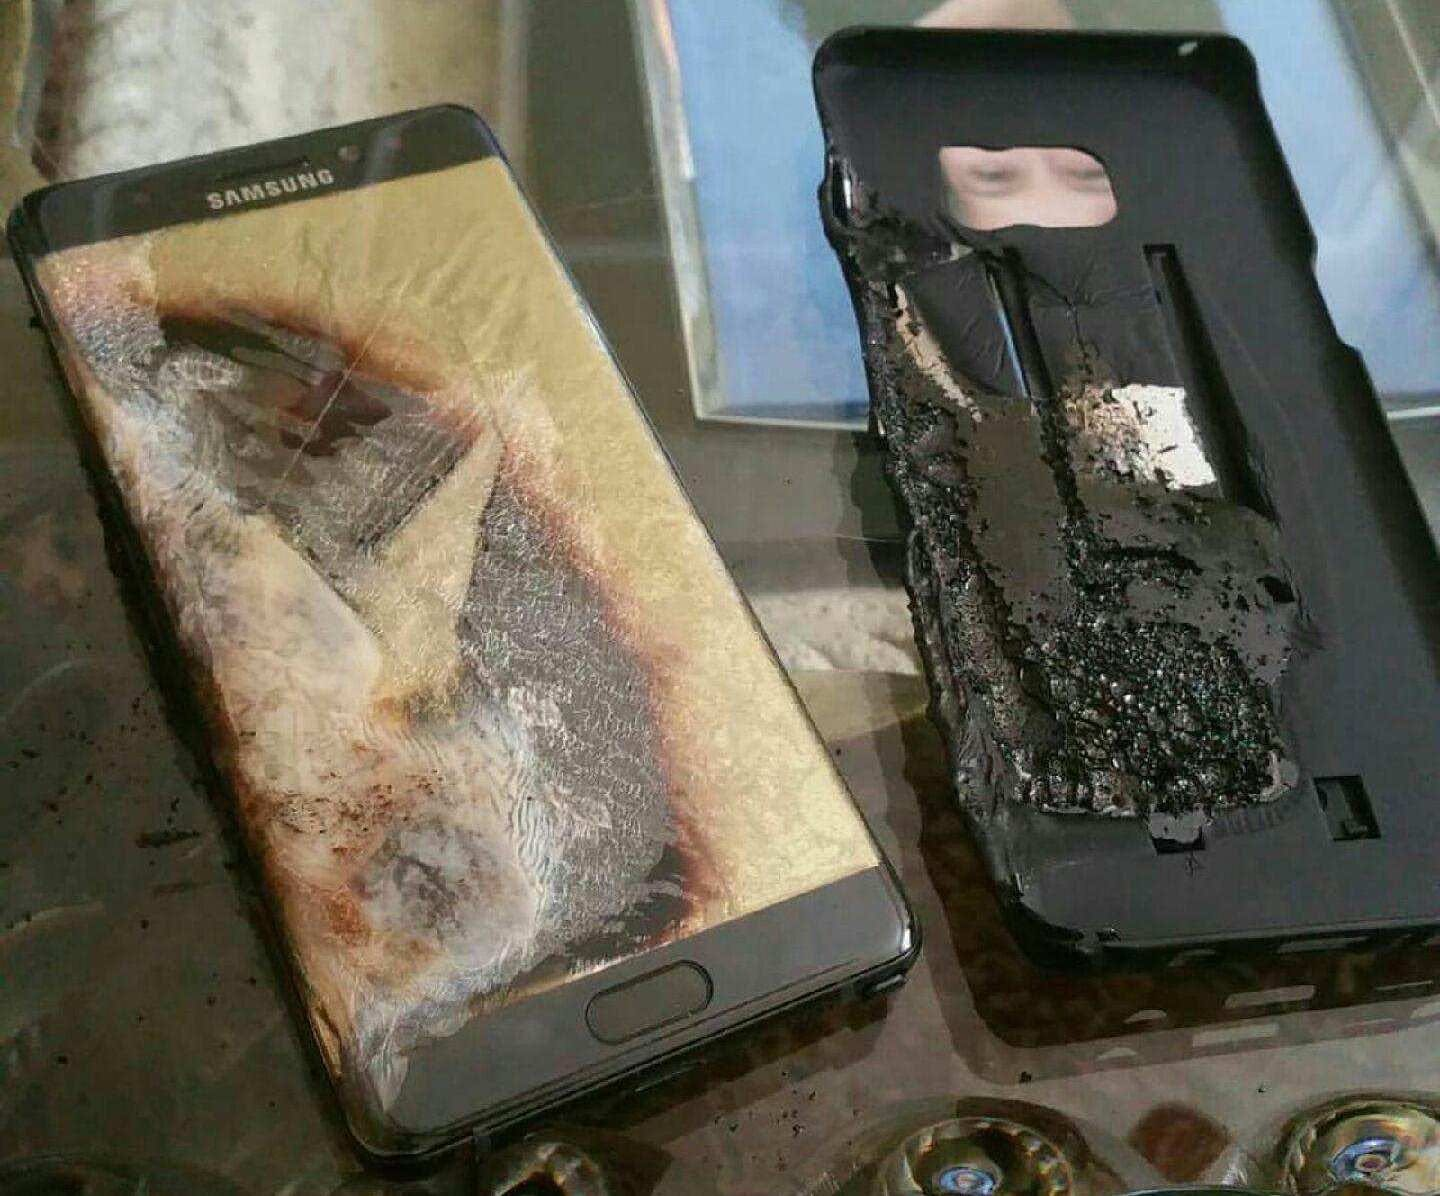 Samsung Galaxy Note 7 Fire Burn 2